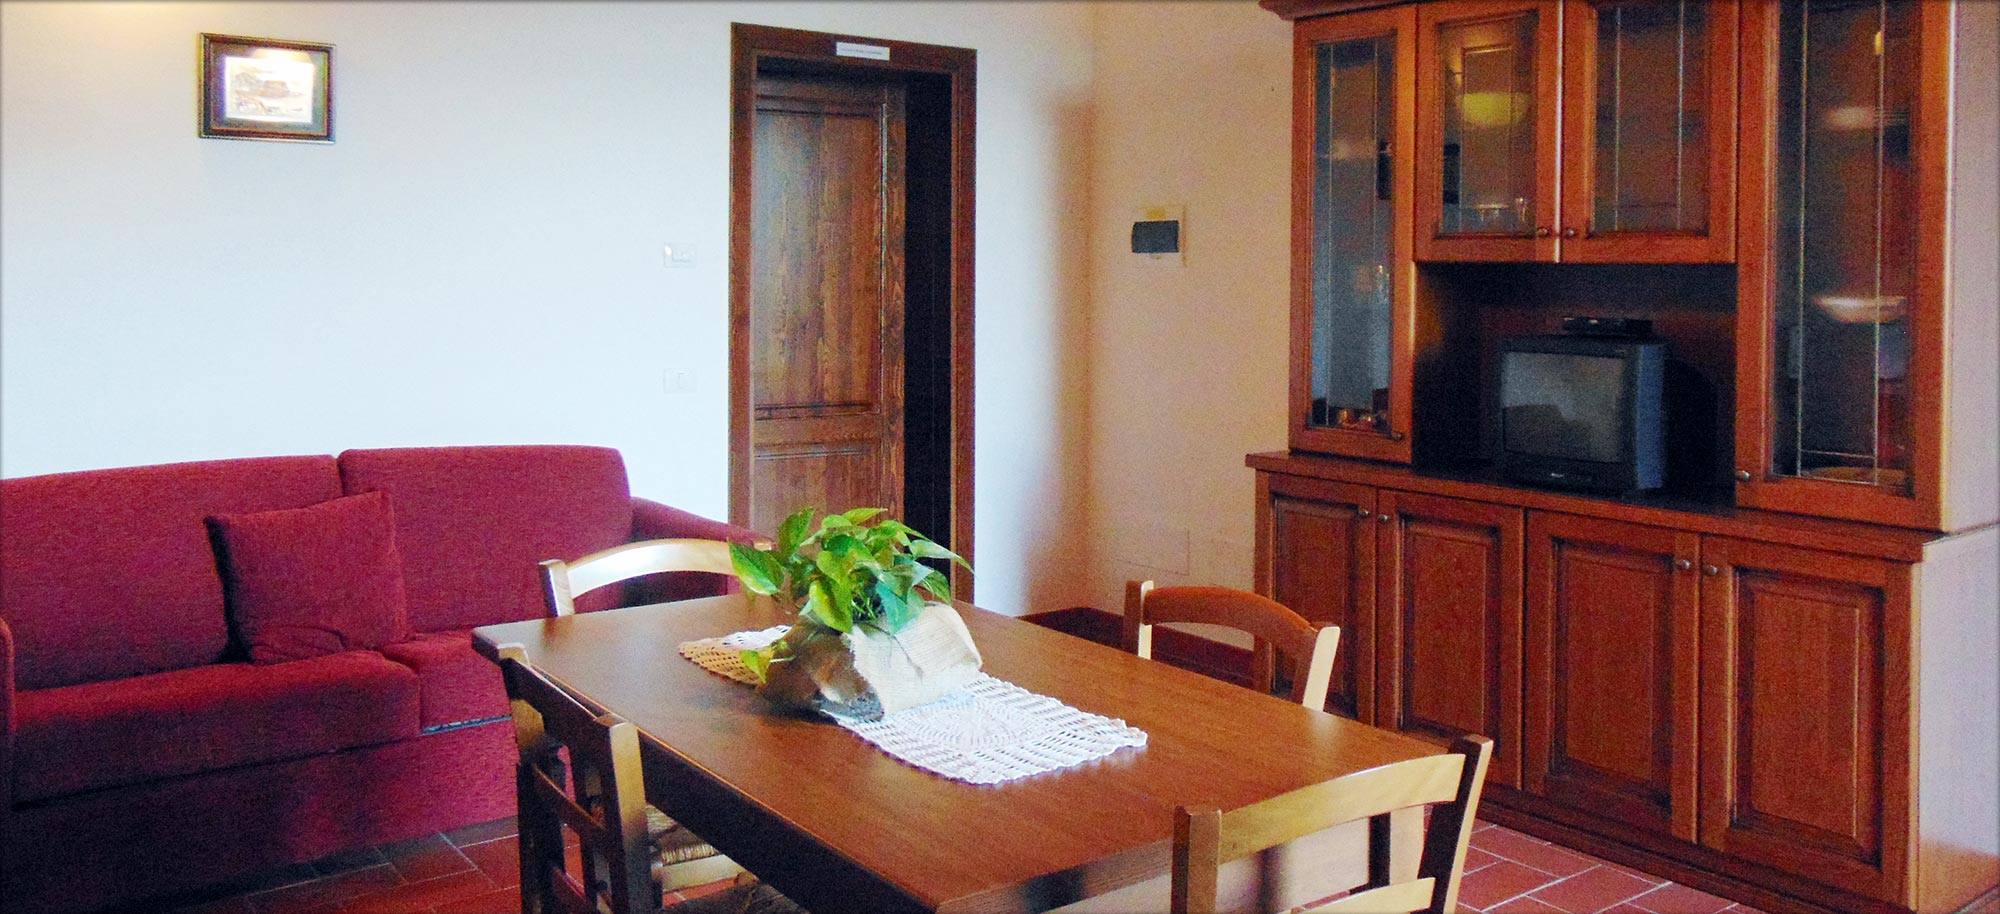 Corte Tommasi - Holiday apartments in Tuscany - 205 - Tuscany apartment with swimming pool